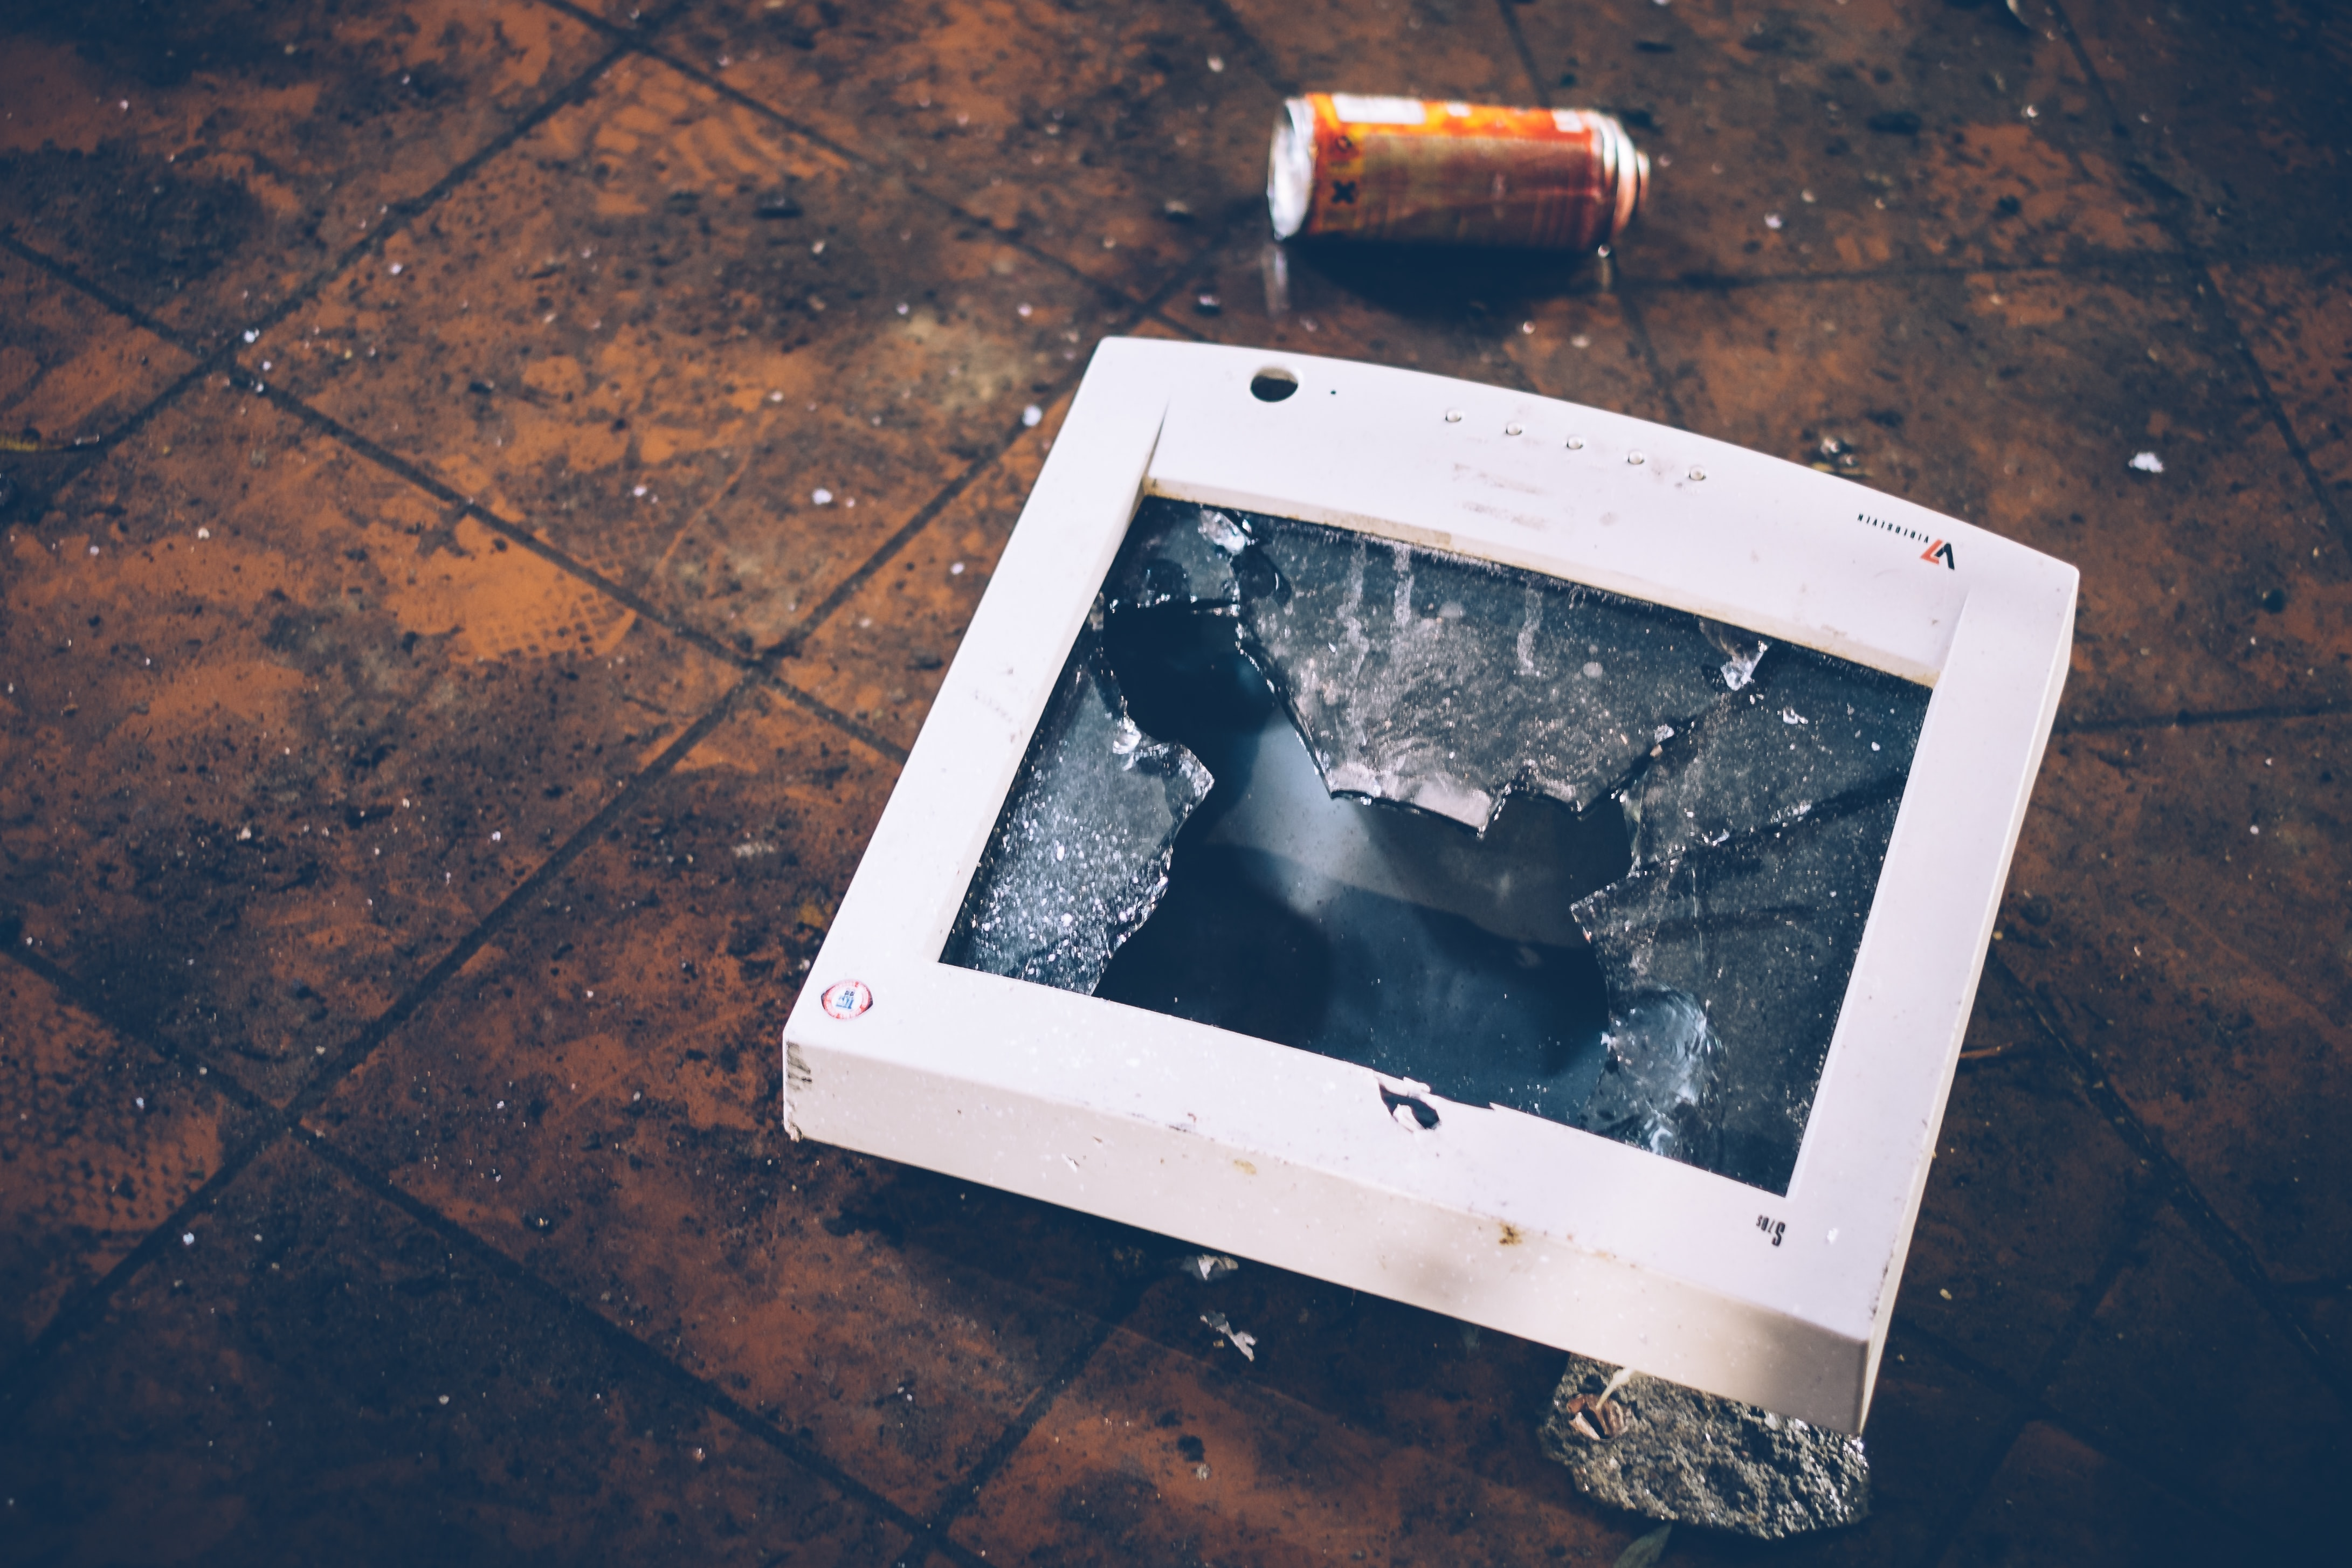 A smashed old piece of display technology on a dirty floor